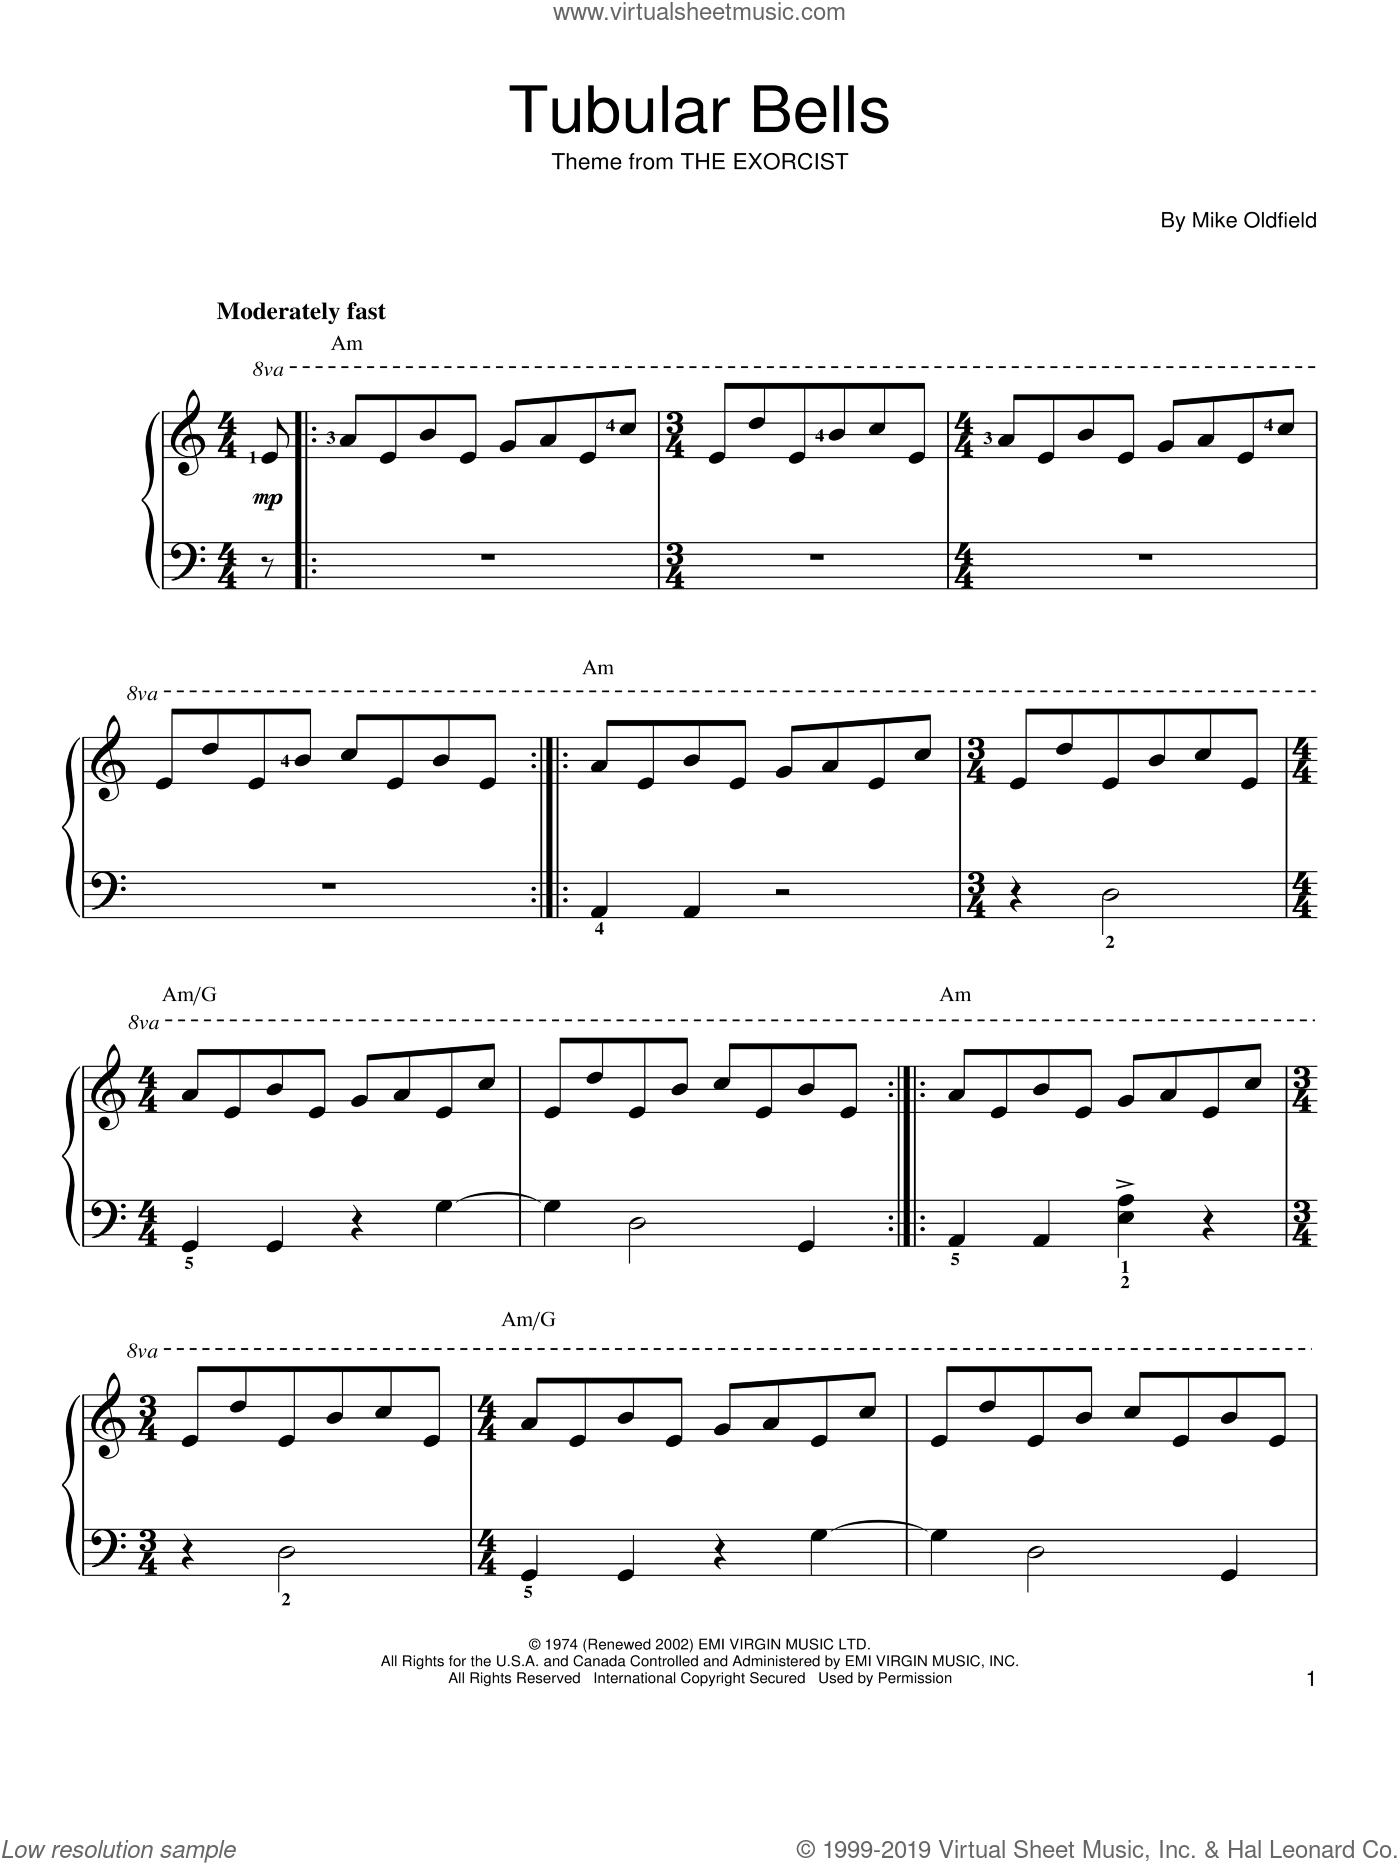 Tubular Bells sheet music for piano solo (chords) by Mike Oldfield